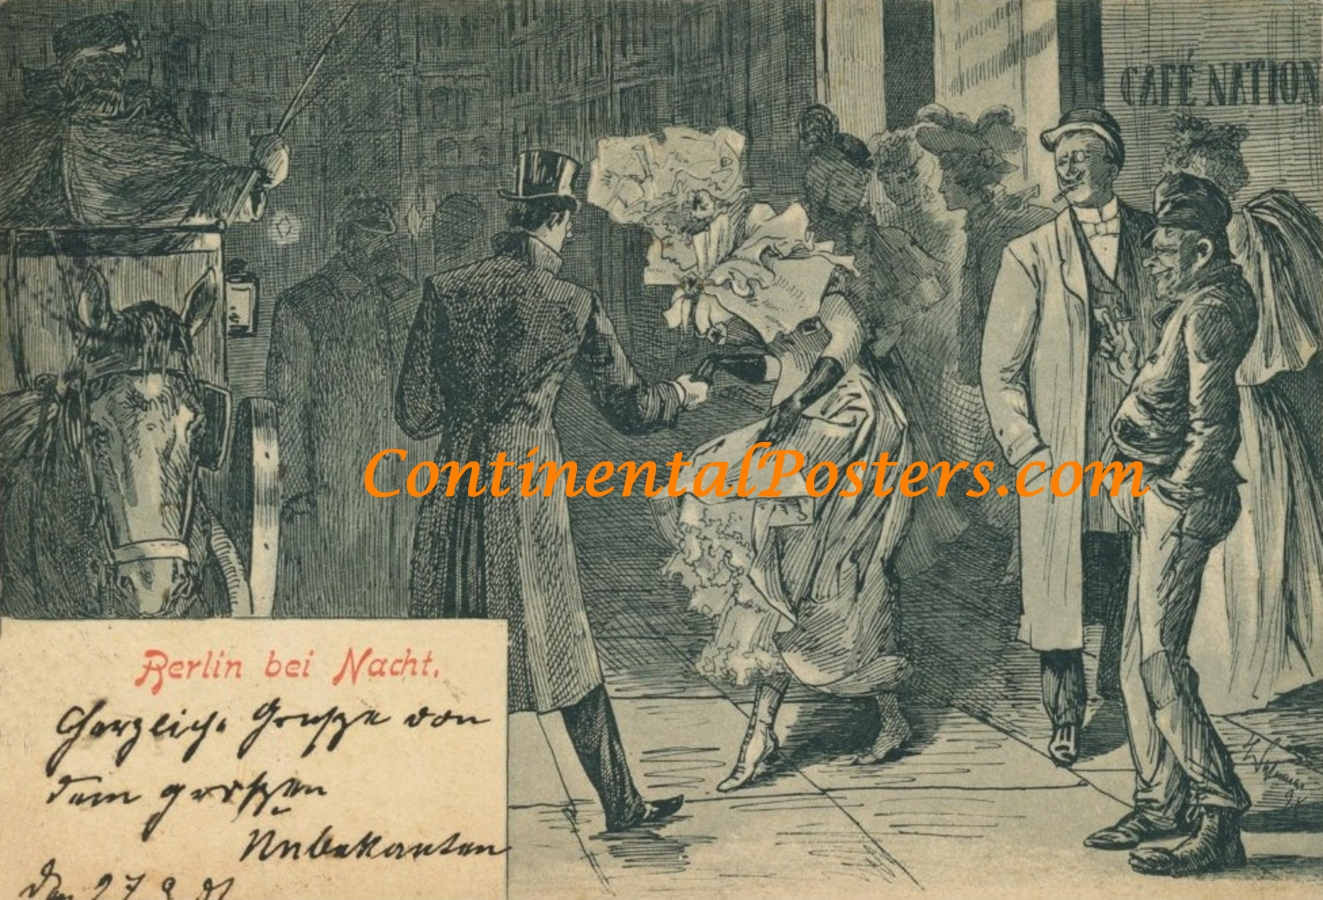 Berlin bei Nacht 1901 Cafe Nation, C 101  poster cp